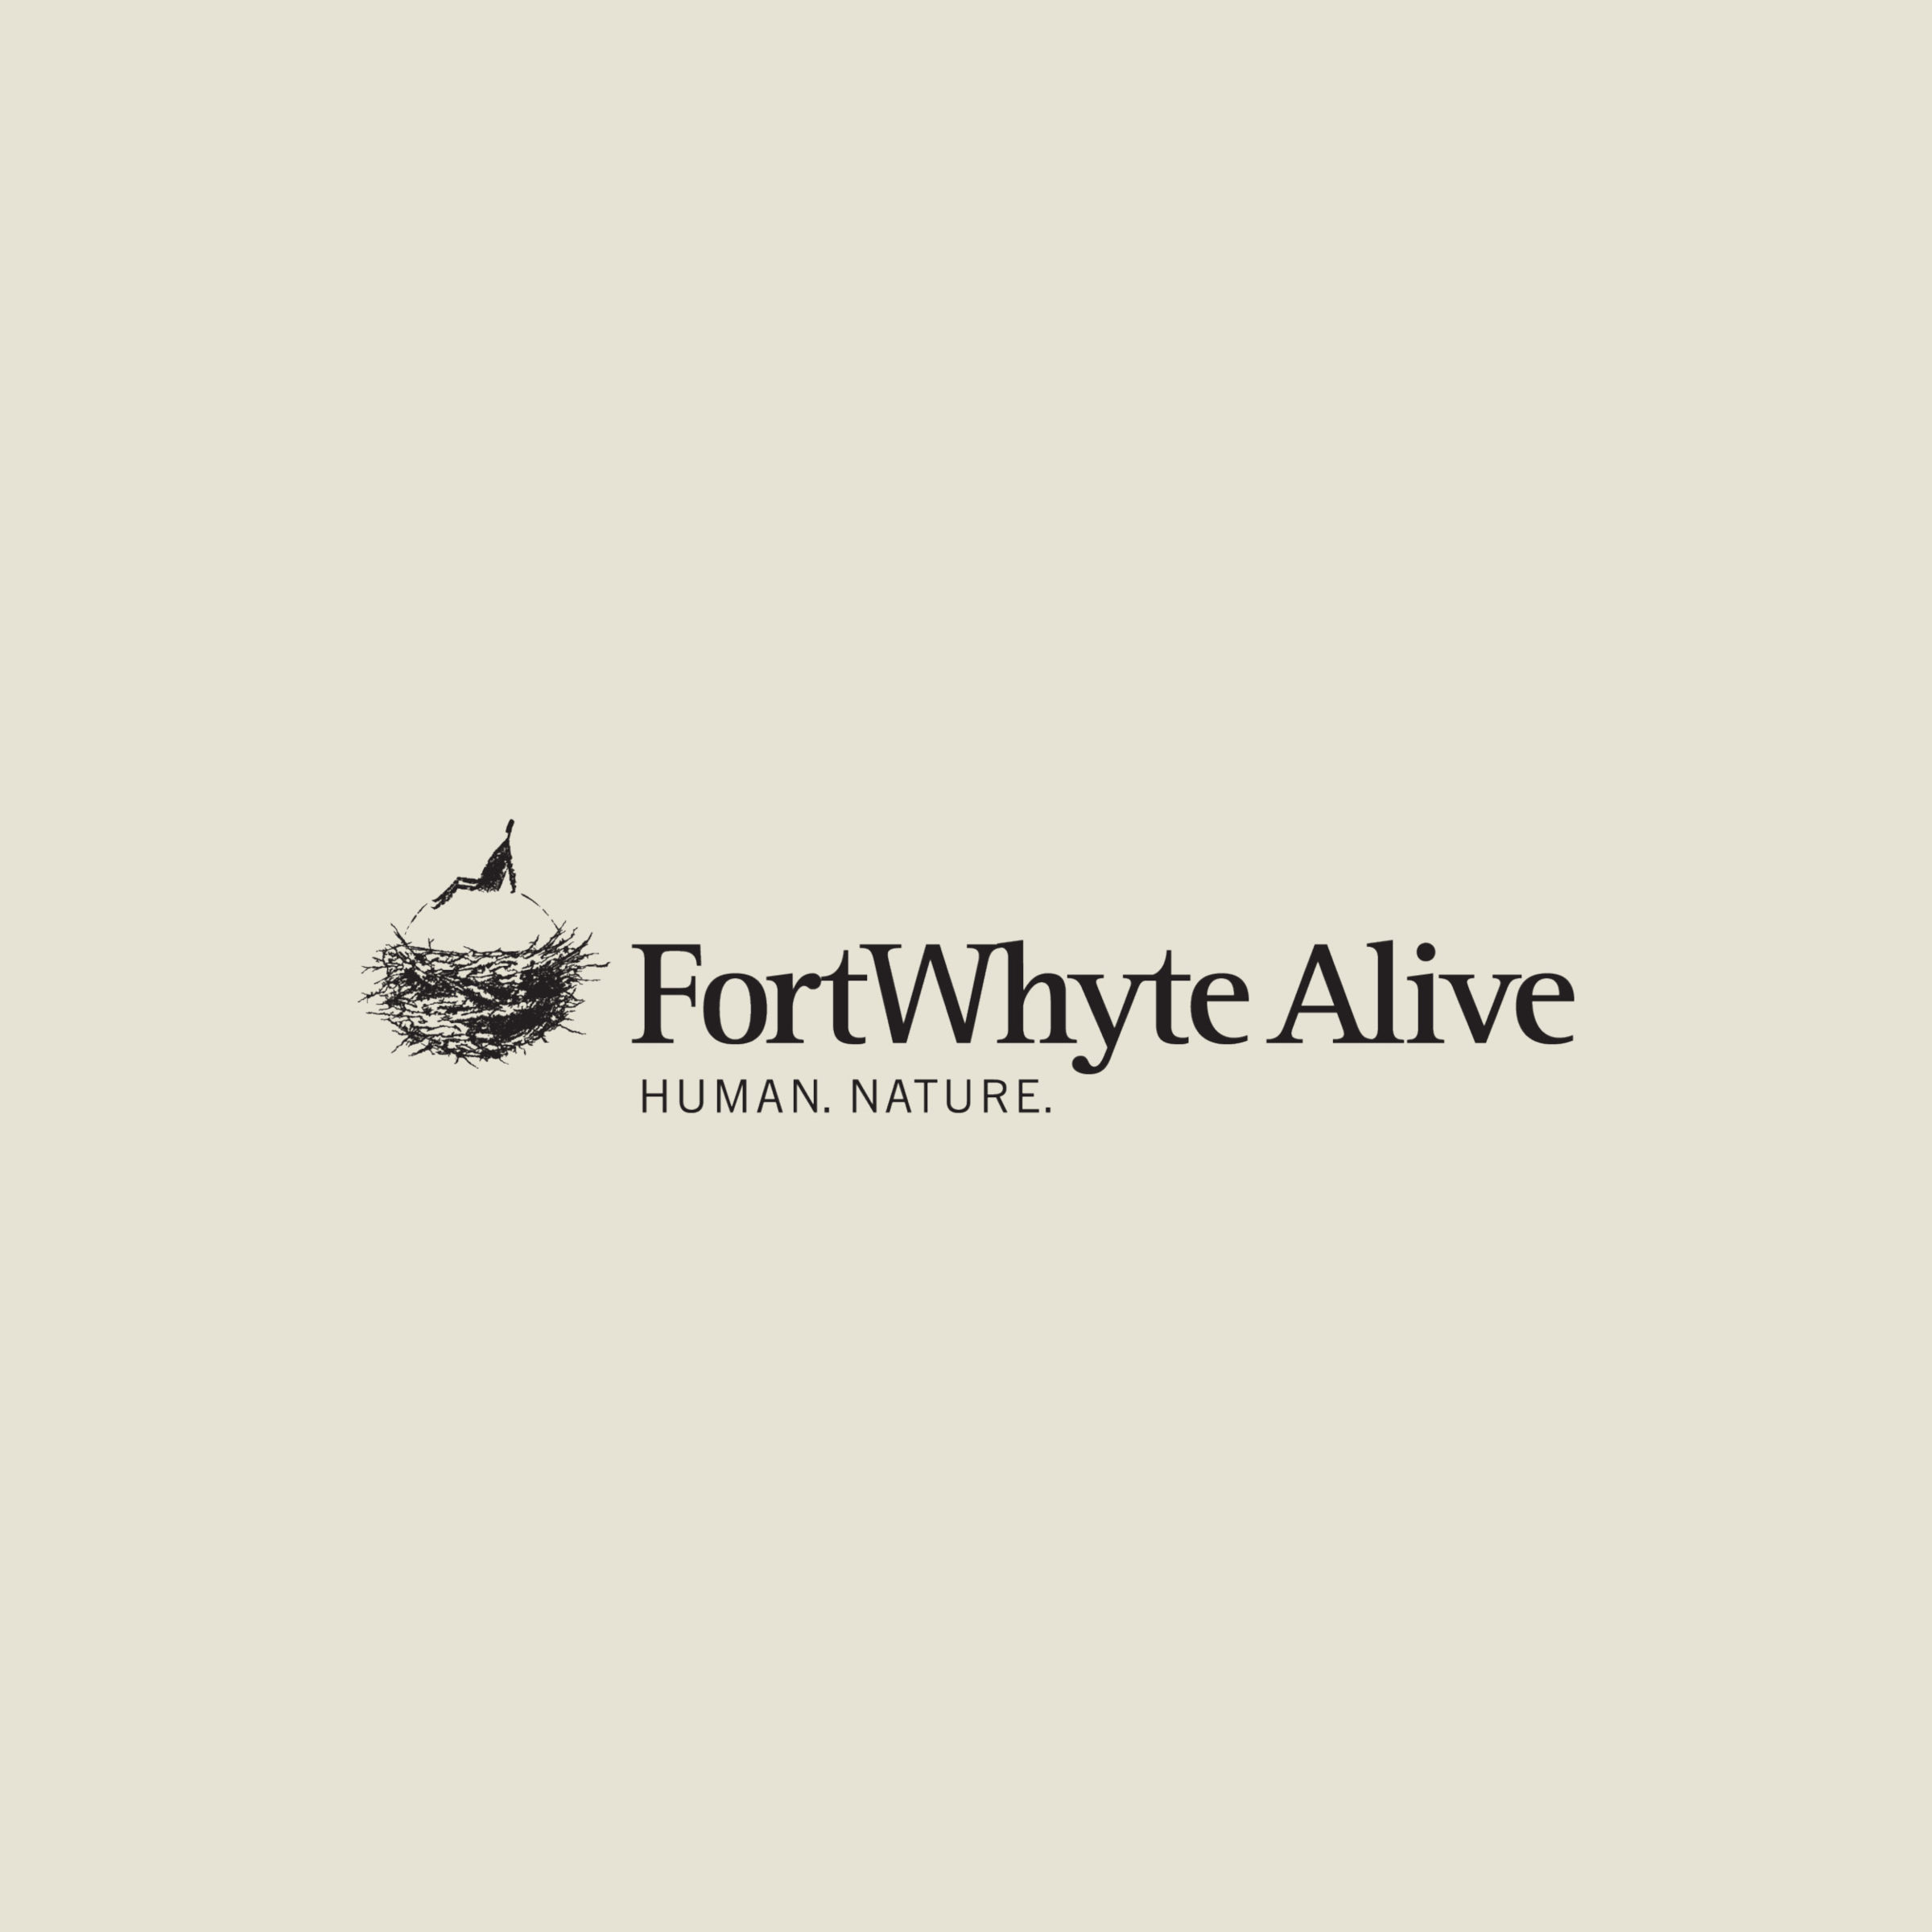 Fortwhyte alive graphic